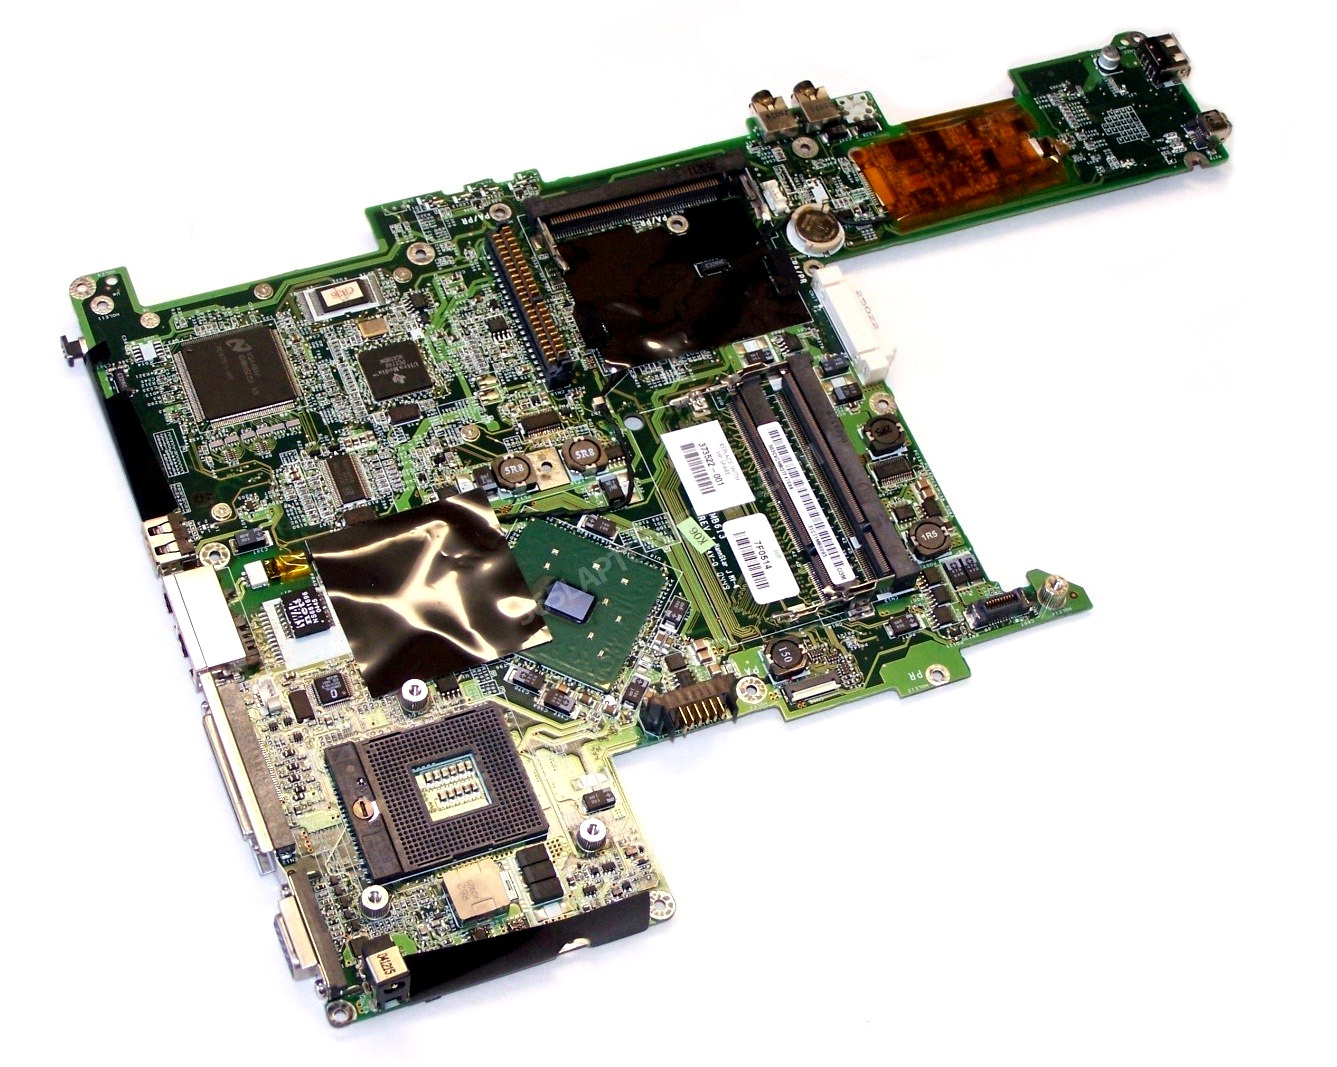 Serwis Laptopw Asus Olimp A3f Laptop Block Diagram Pyta Gwna Laptopa